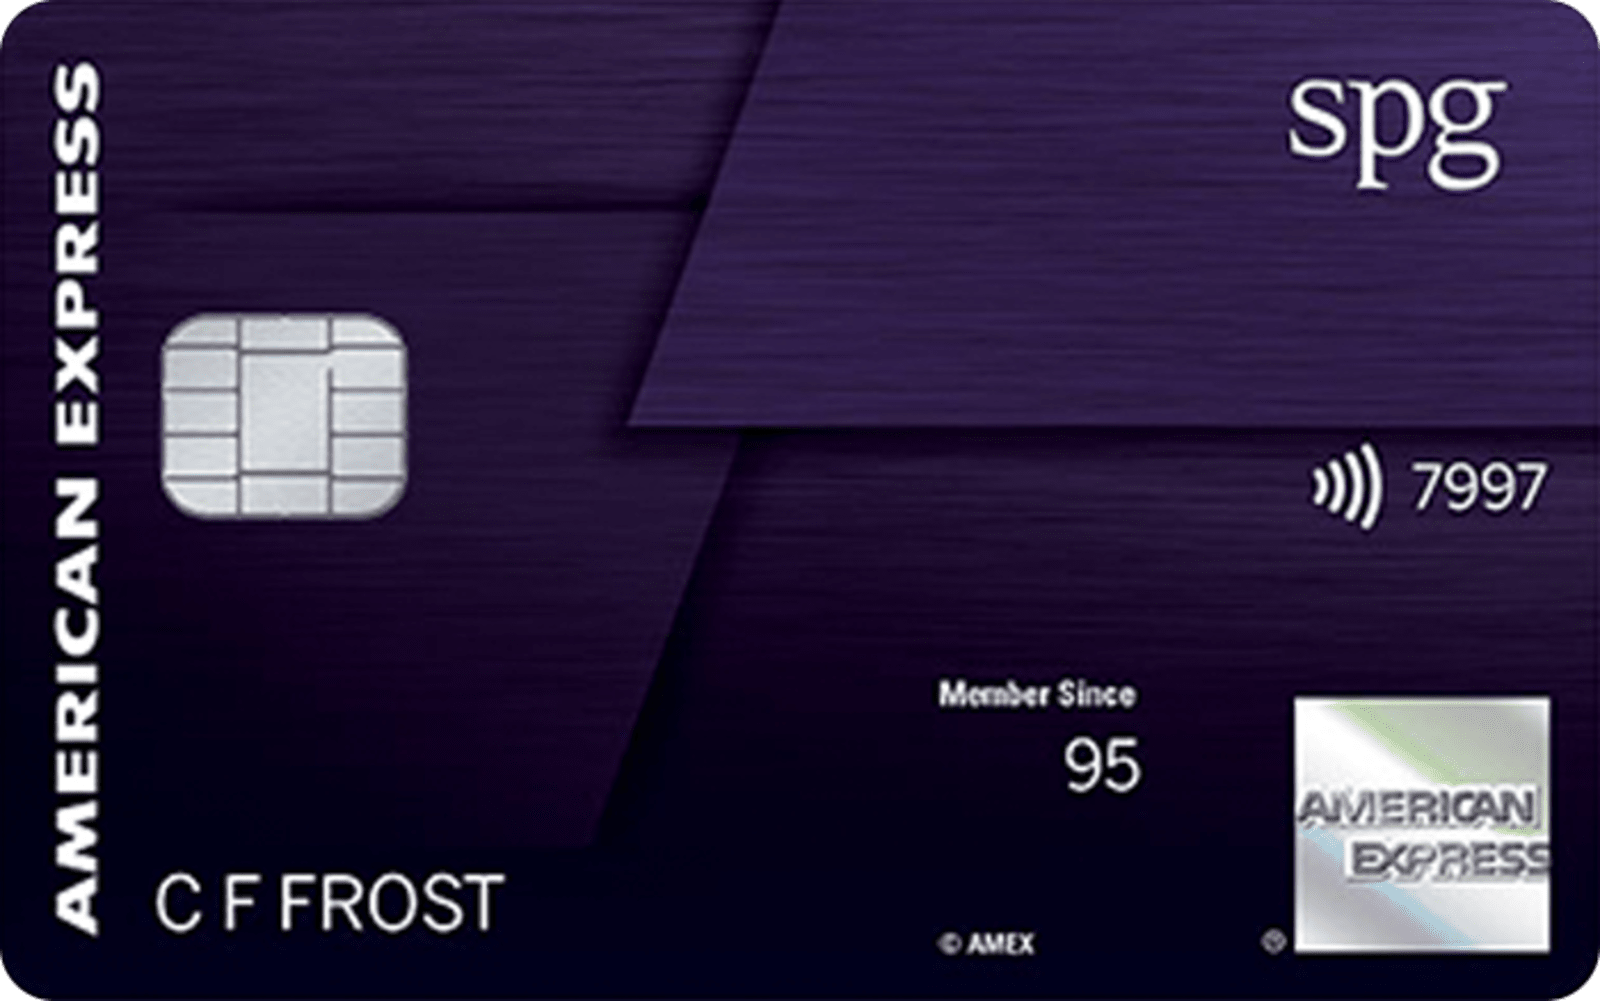 Starwood Preferred Guest® American Express Luxury Card